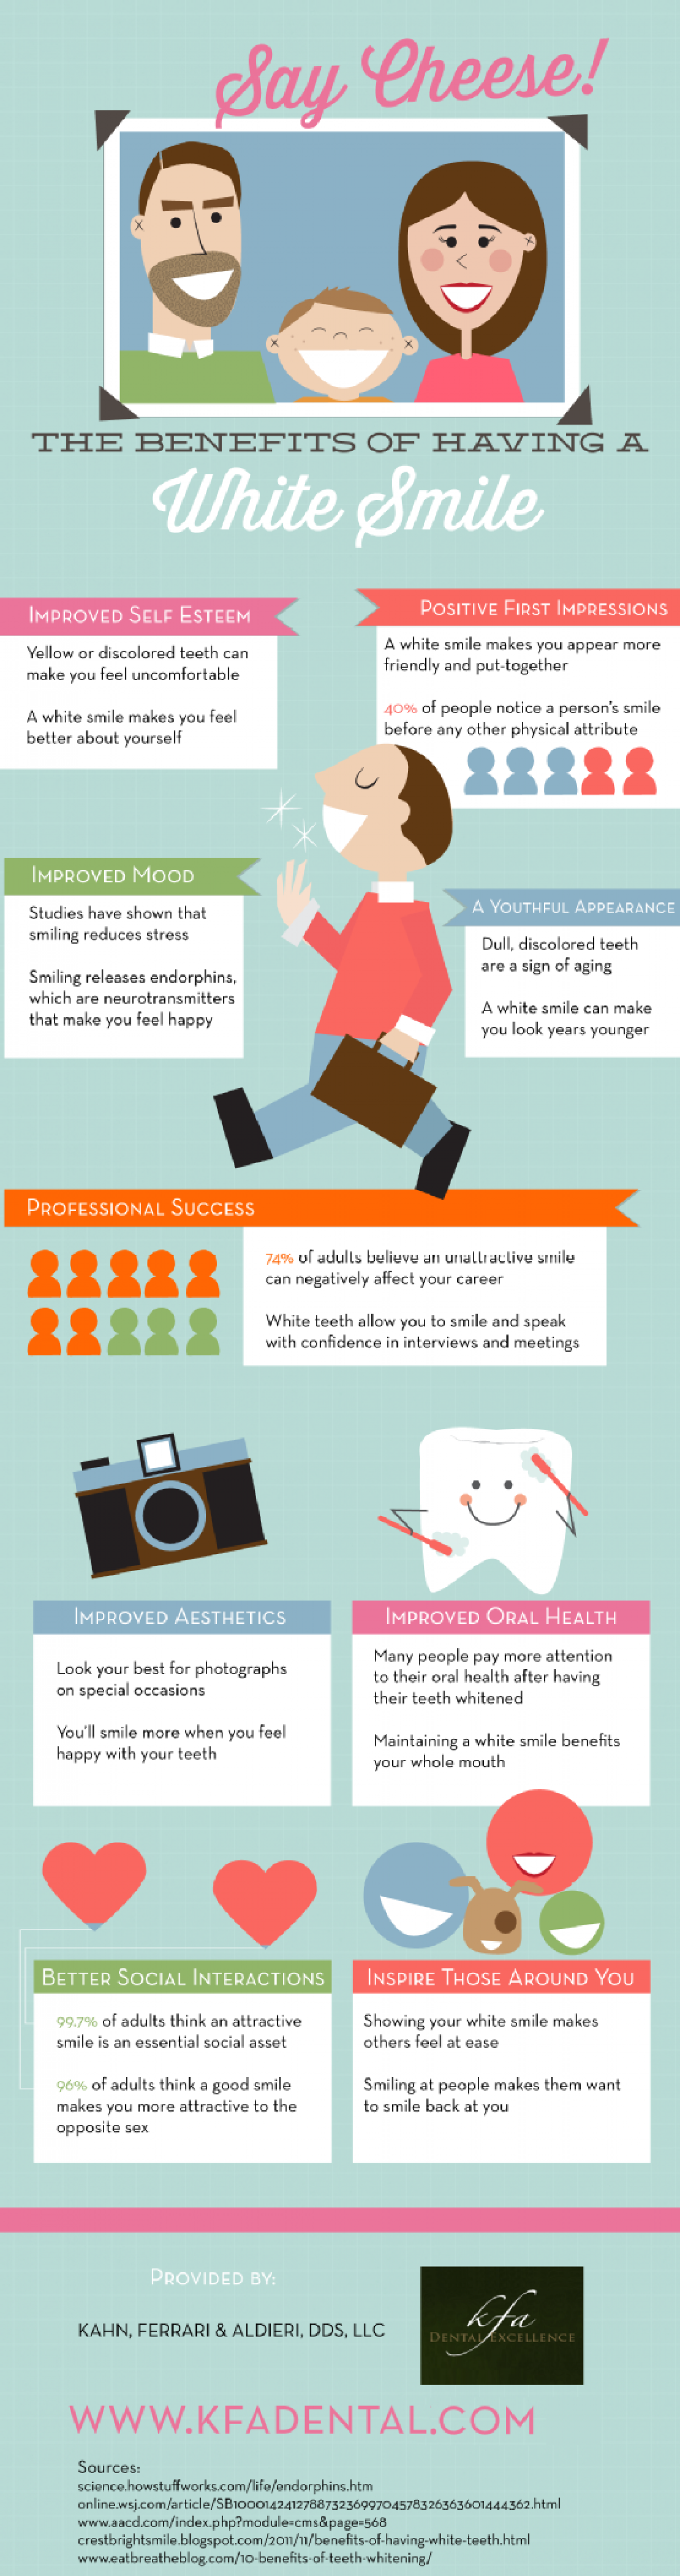 Say Cheese! The Benefits of Having a White Smile Infographic